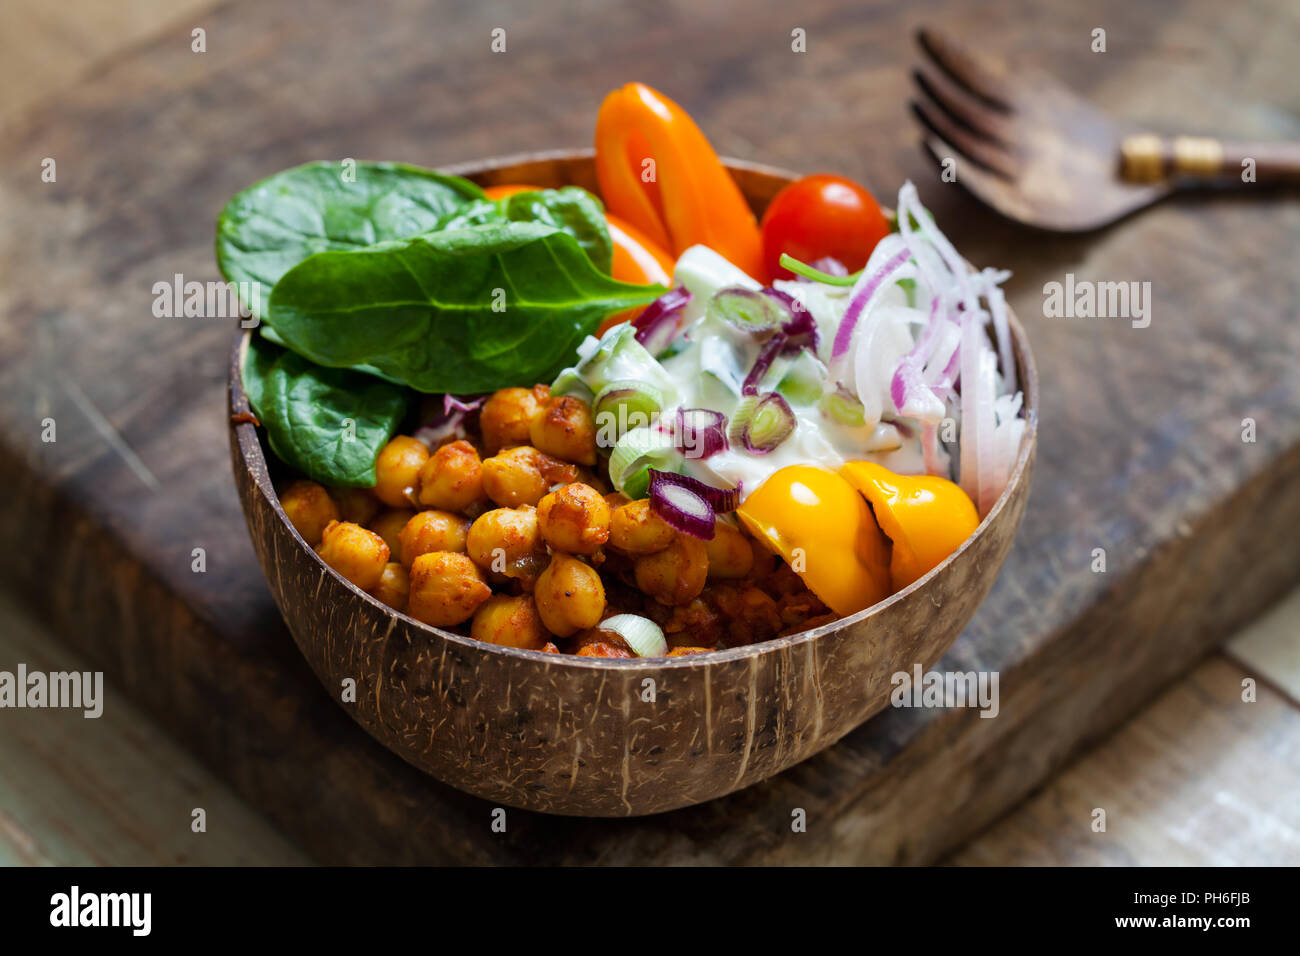 Vegan Buddha bowl with spicy chickpeas - Stock Image